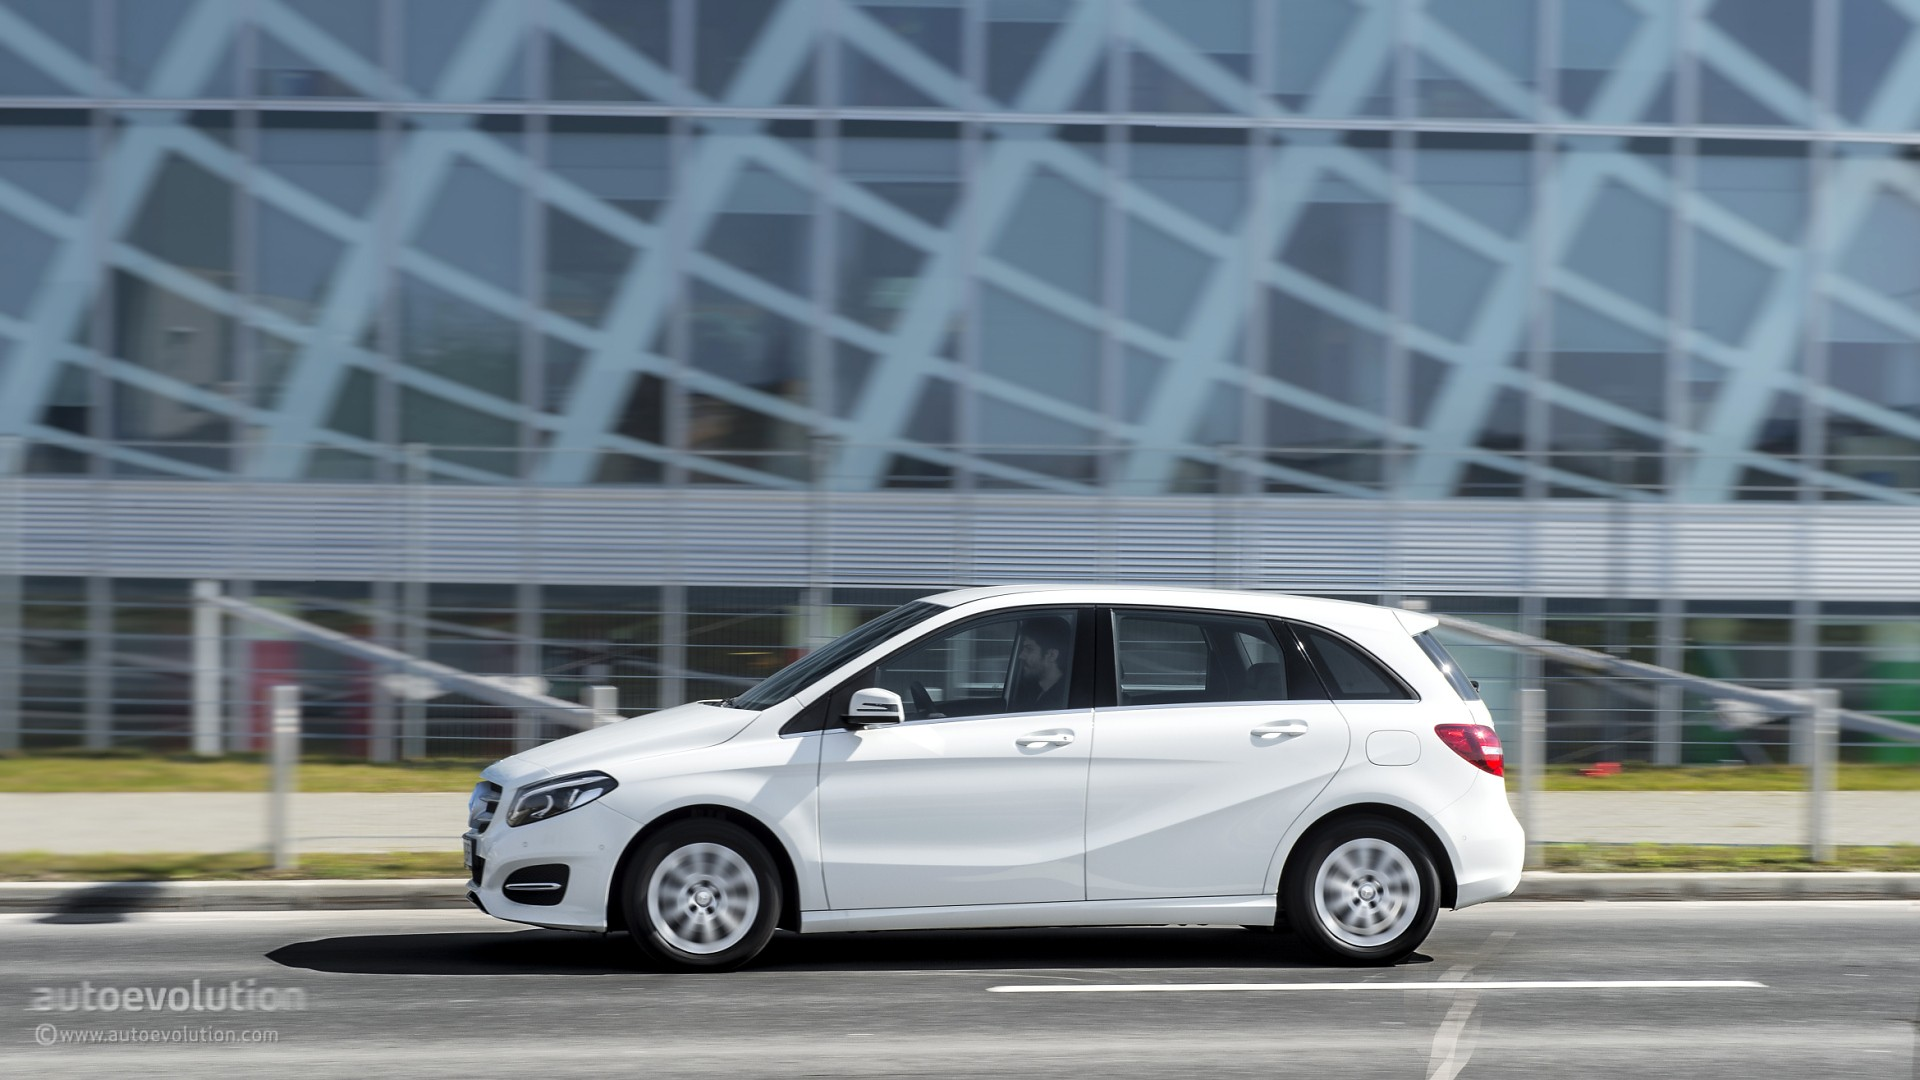 2015 Mercedes Benz B Class Hd Wallpapers The German Multi